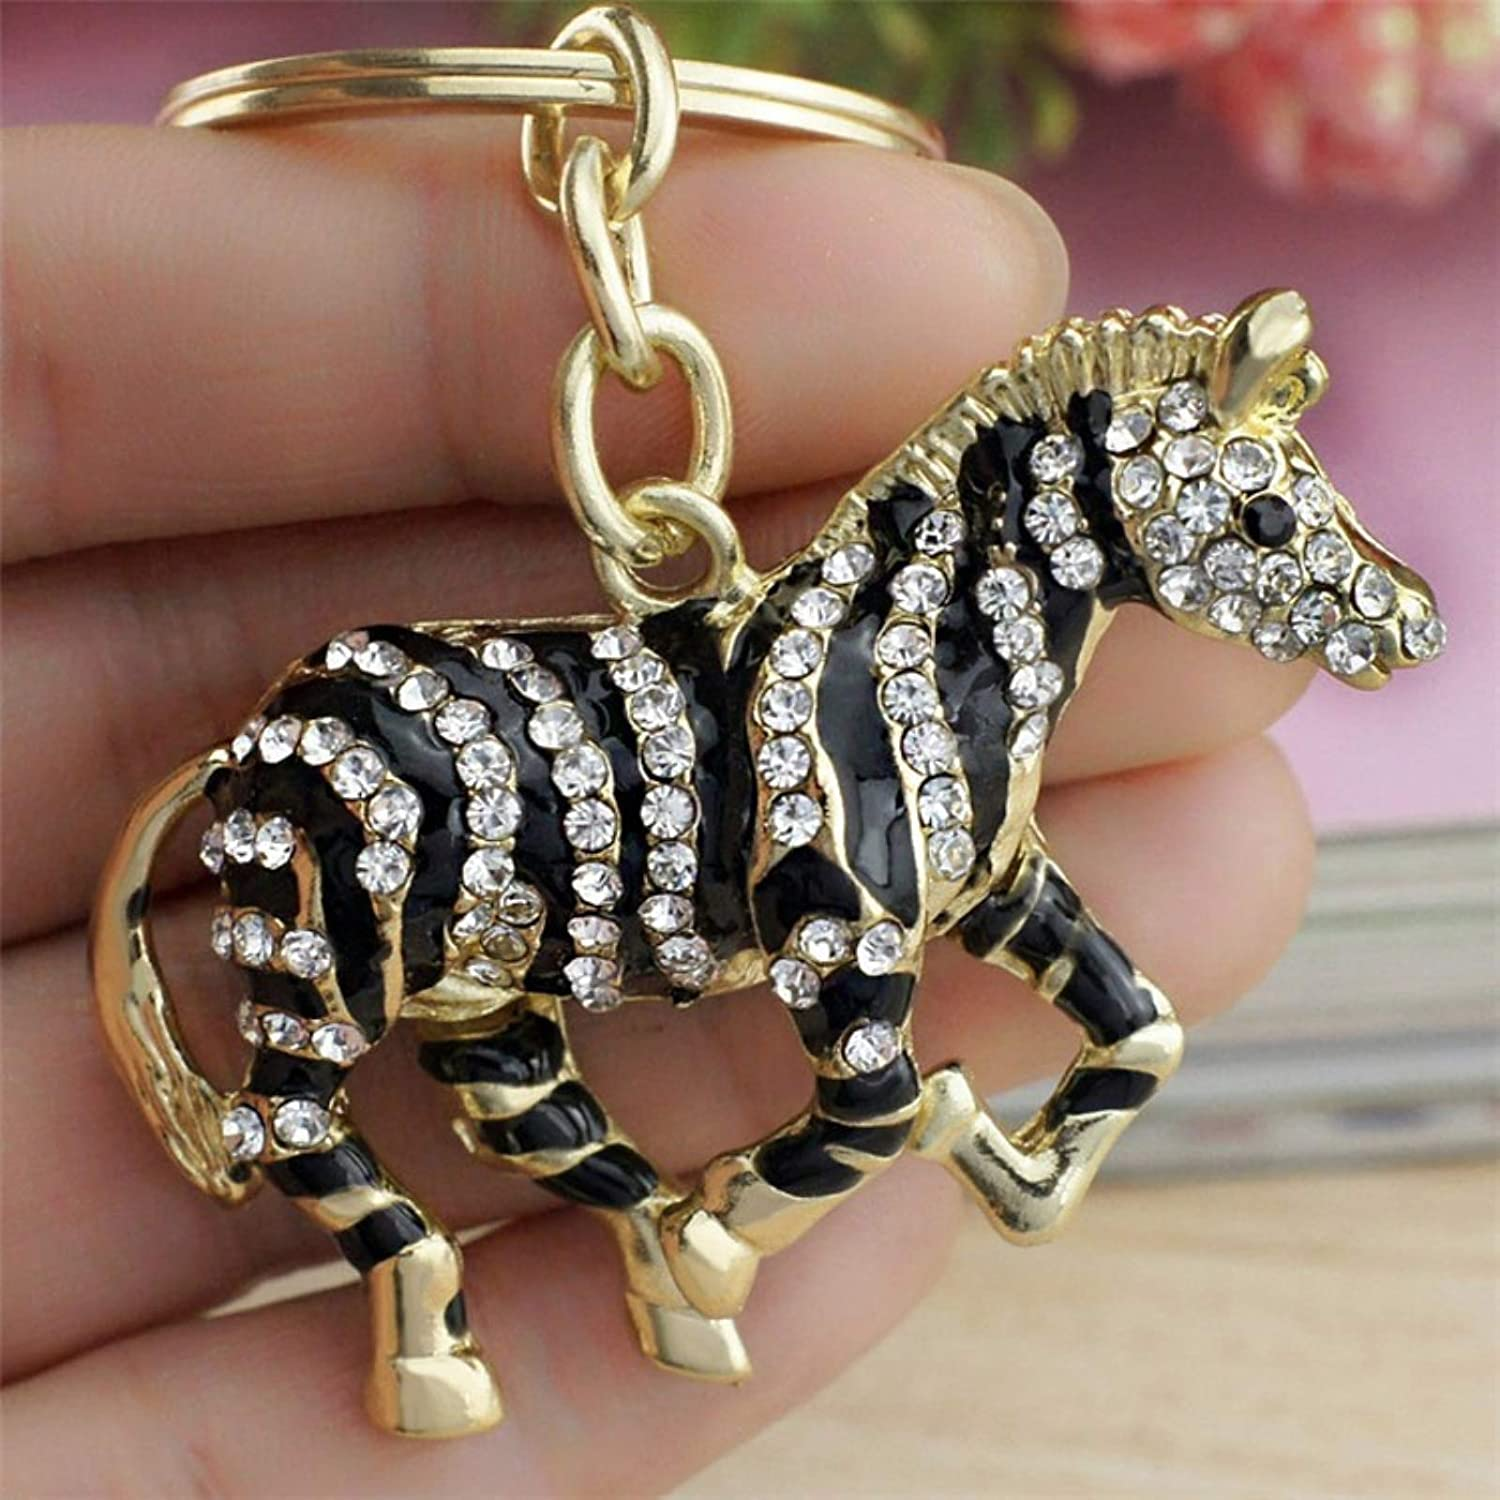 Amazon.com   Black Zebra Horse Crystal Rhinestone Metal Bag Pendant Key  Chains Holder Women Keyrings Keychains for Car   Office Products 788785964b